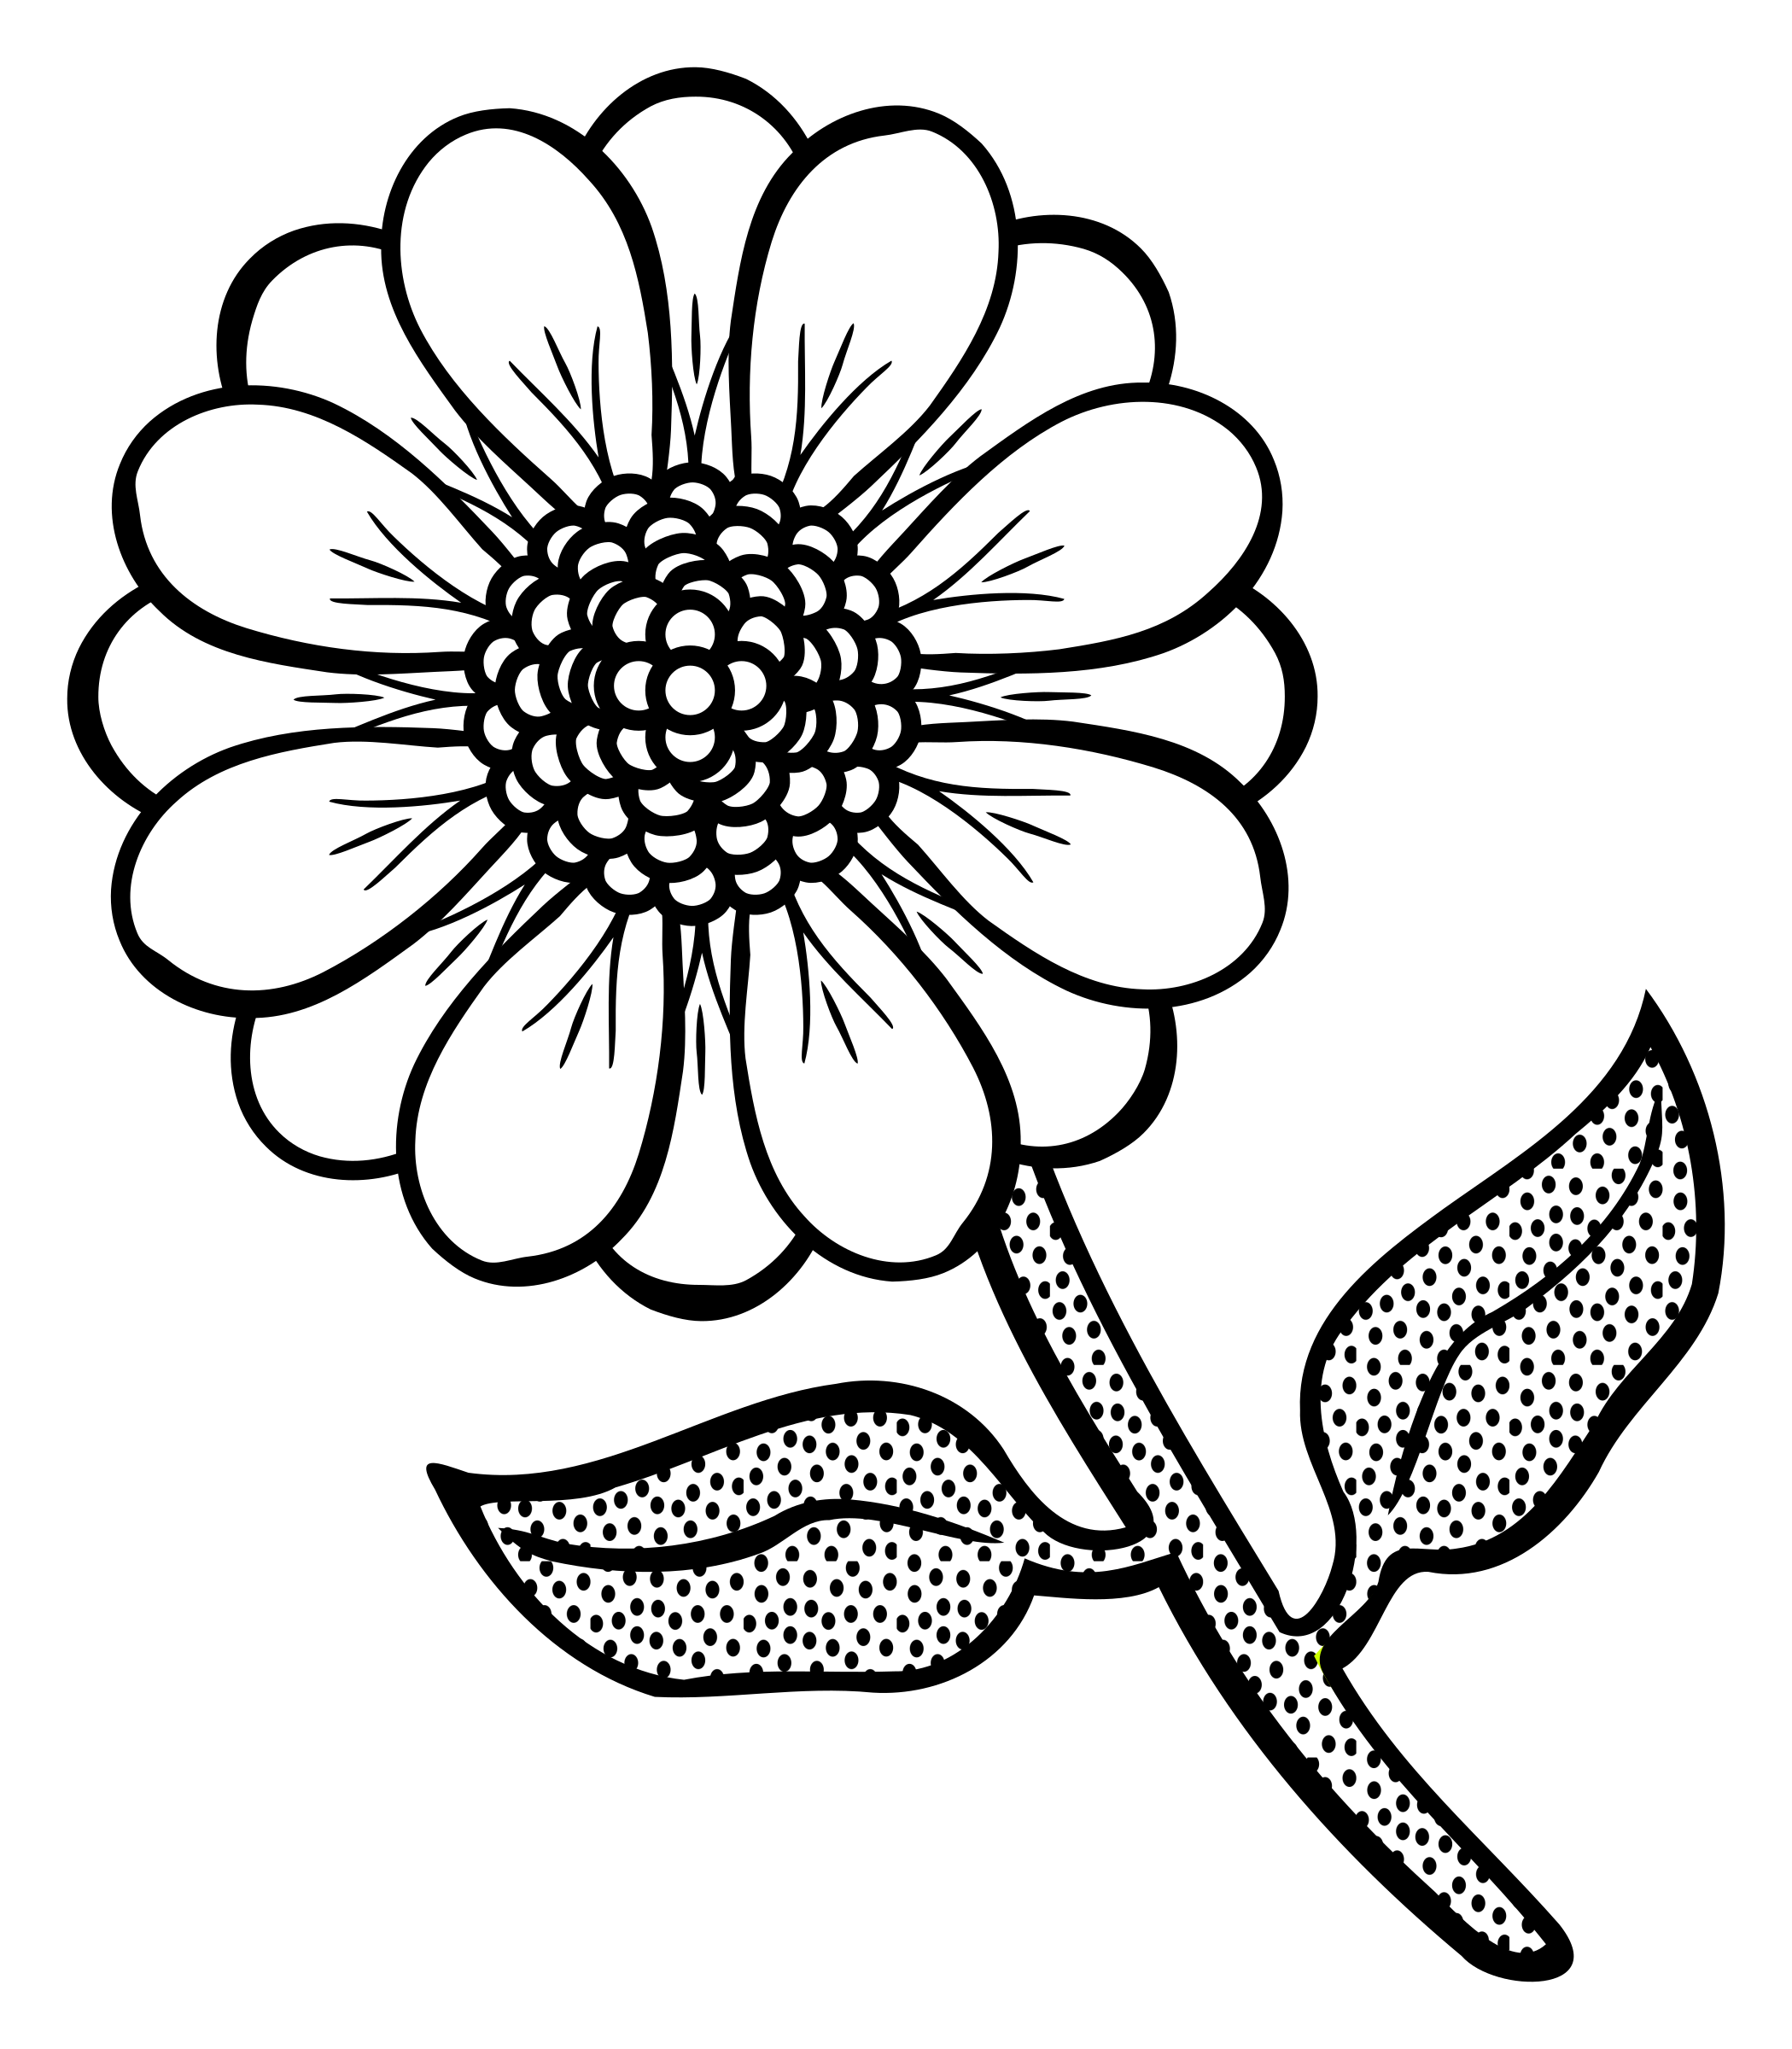 Flower line art png. Lineart icons free and